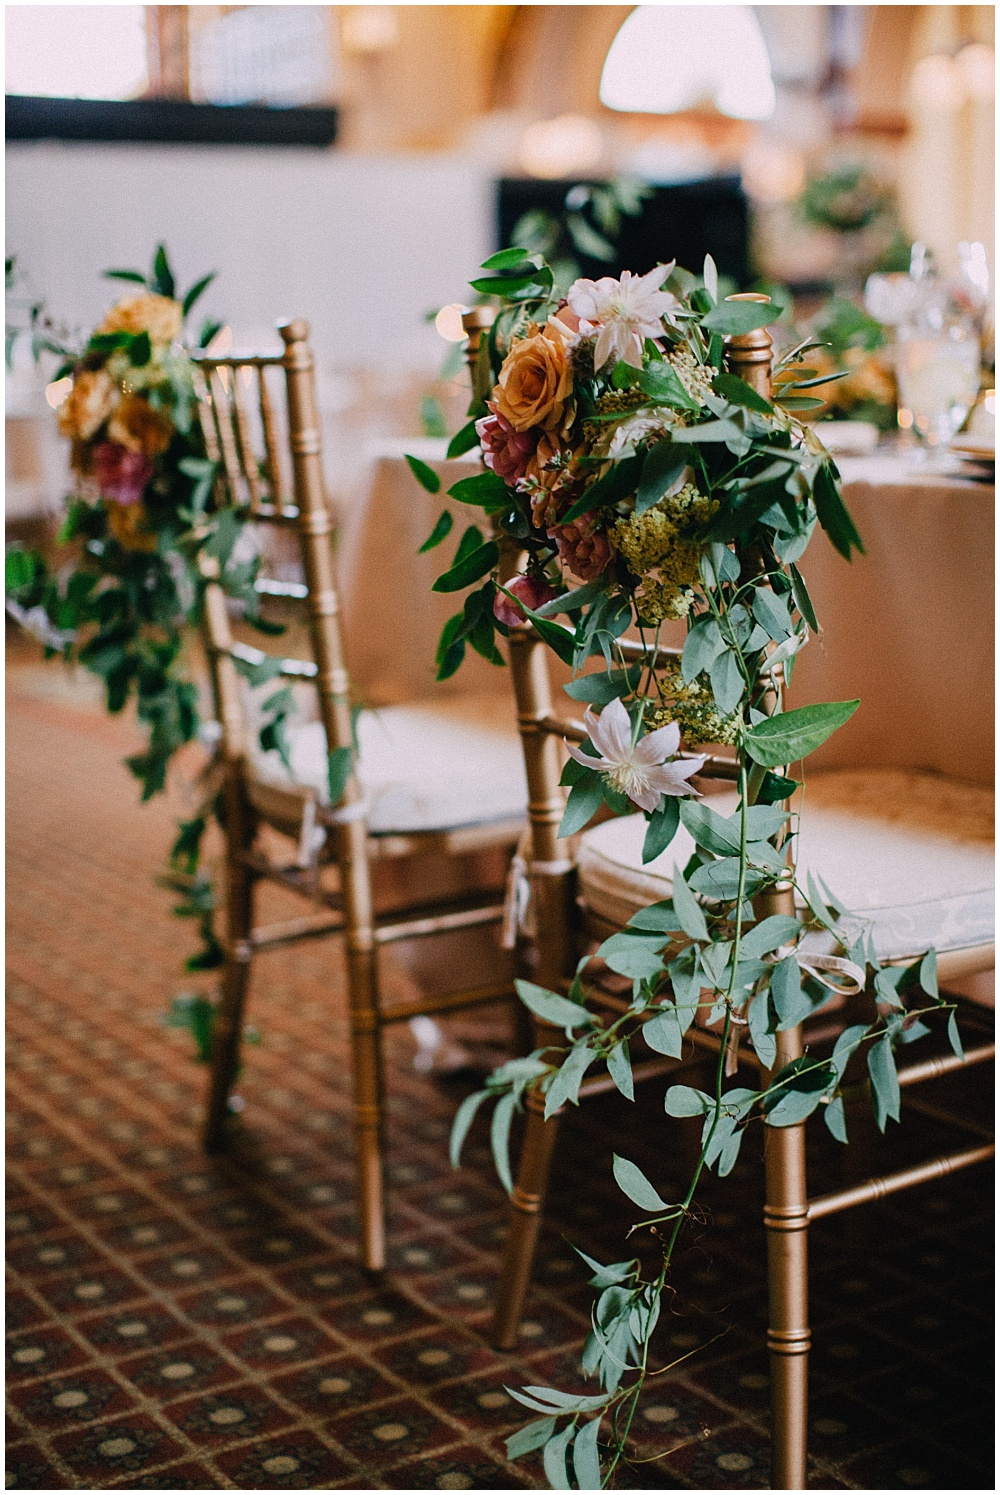 Bride and Groom wedding chair flowers | Downtown Indianapolis Wedding by Caroline Grace Photography & Jessica Dum Wedding Coordination